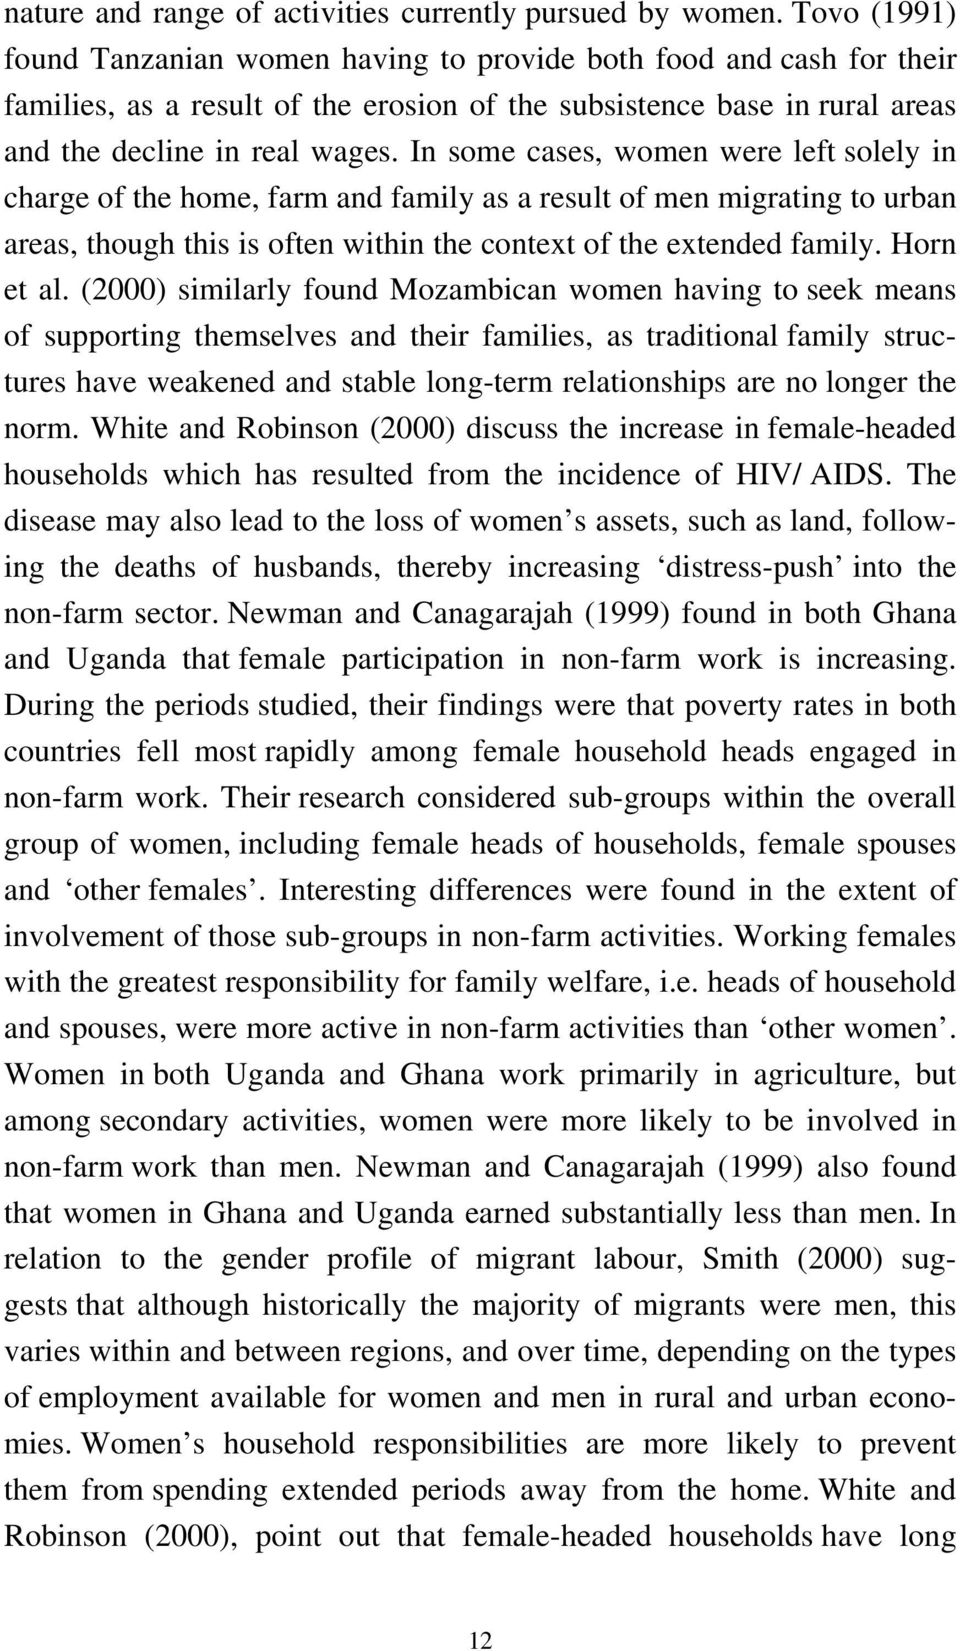 In some cases, women were left solely in charge of the home, farm and family as a result of men migrating to urban areas, though this is often within the context of the extended family. Horn et al.